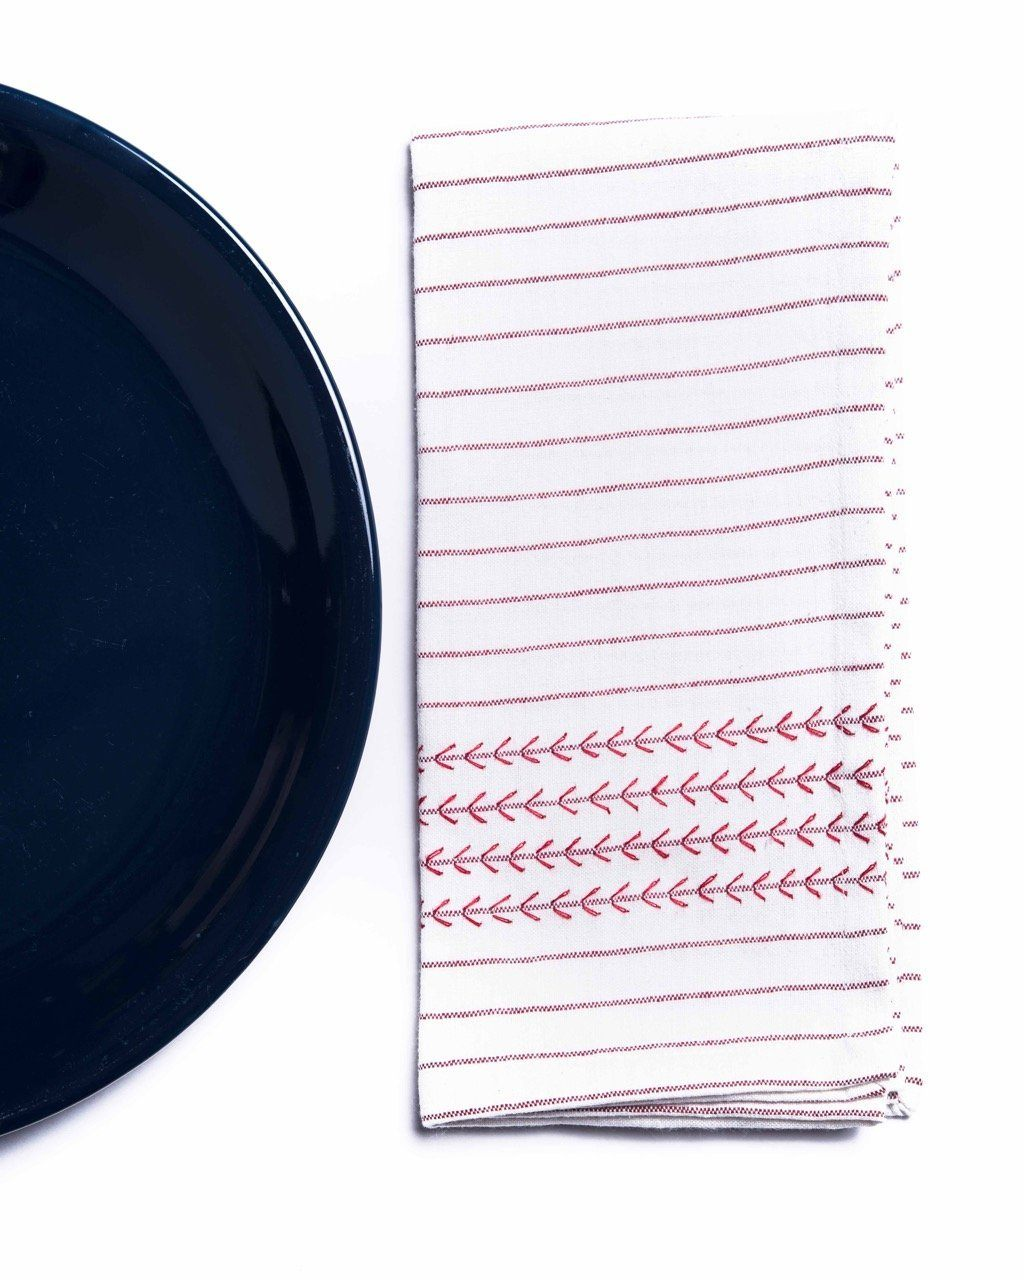 Bloom & Give Lily Napkins Kitchen & Tabletop Bloom & Give